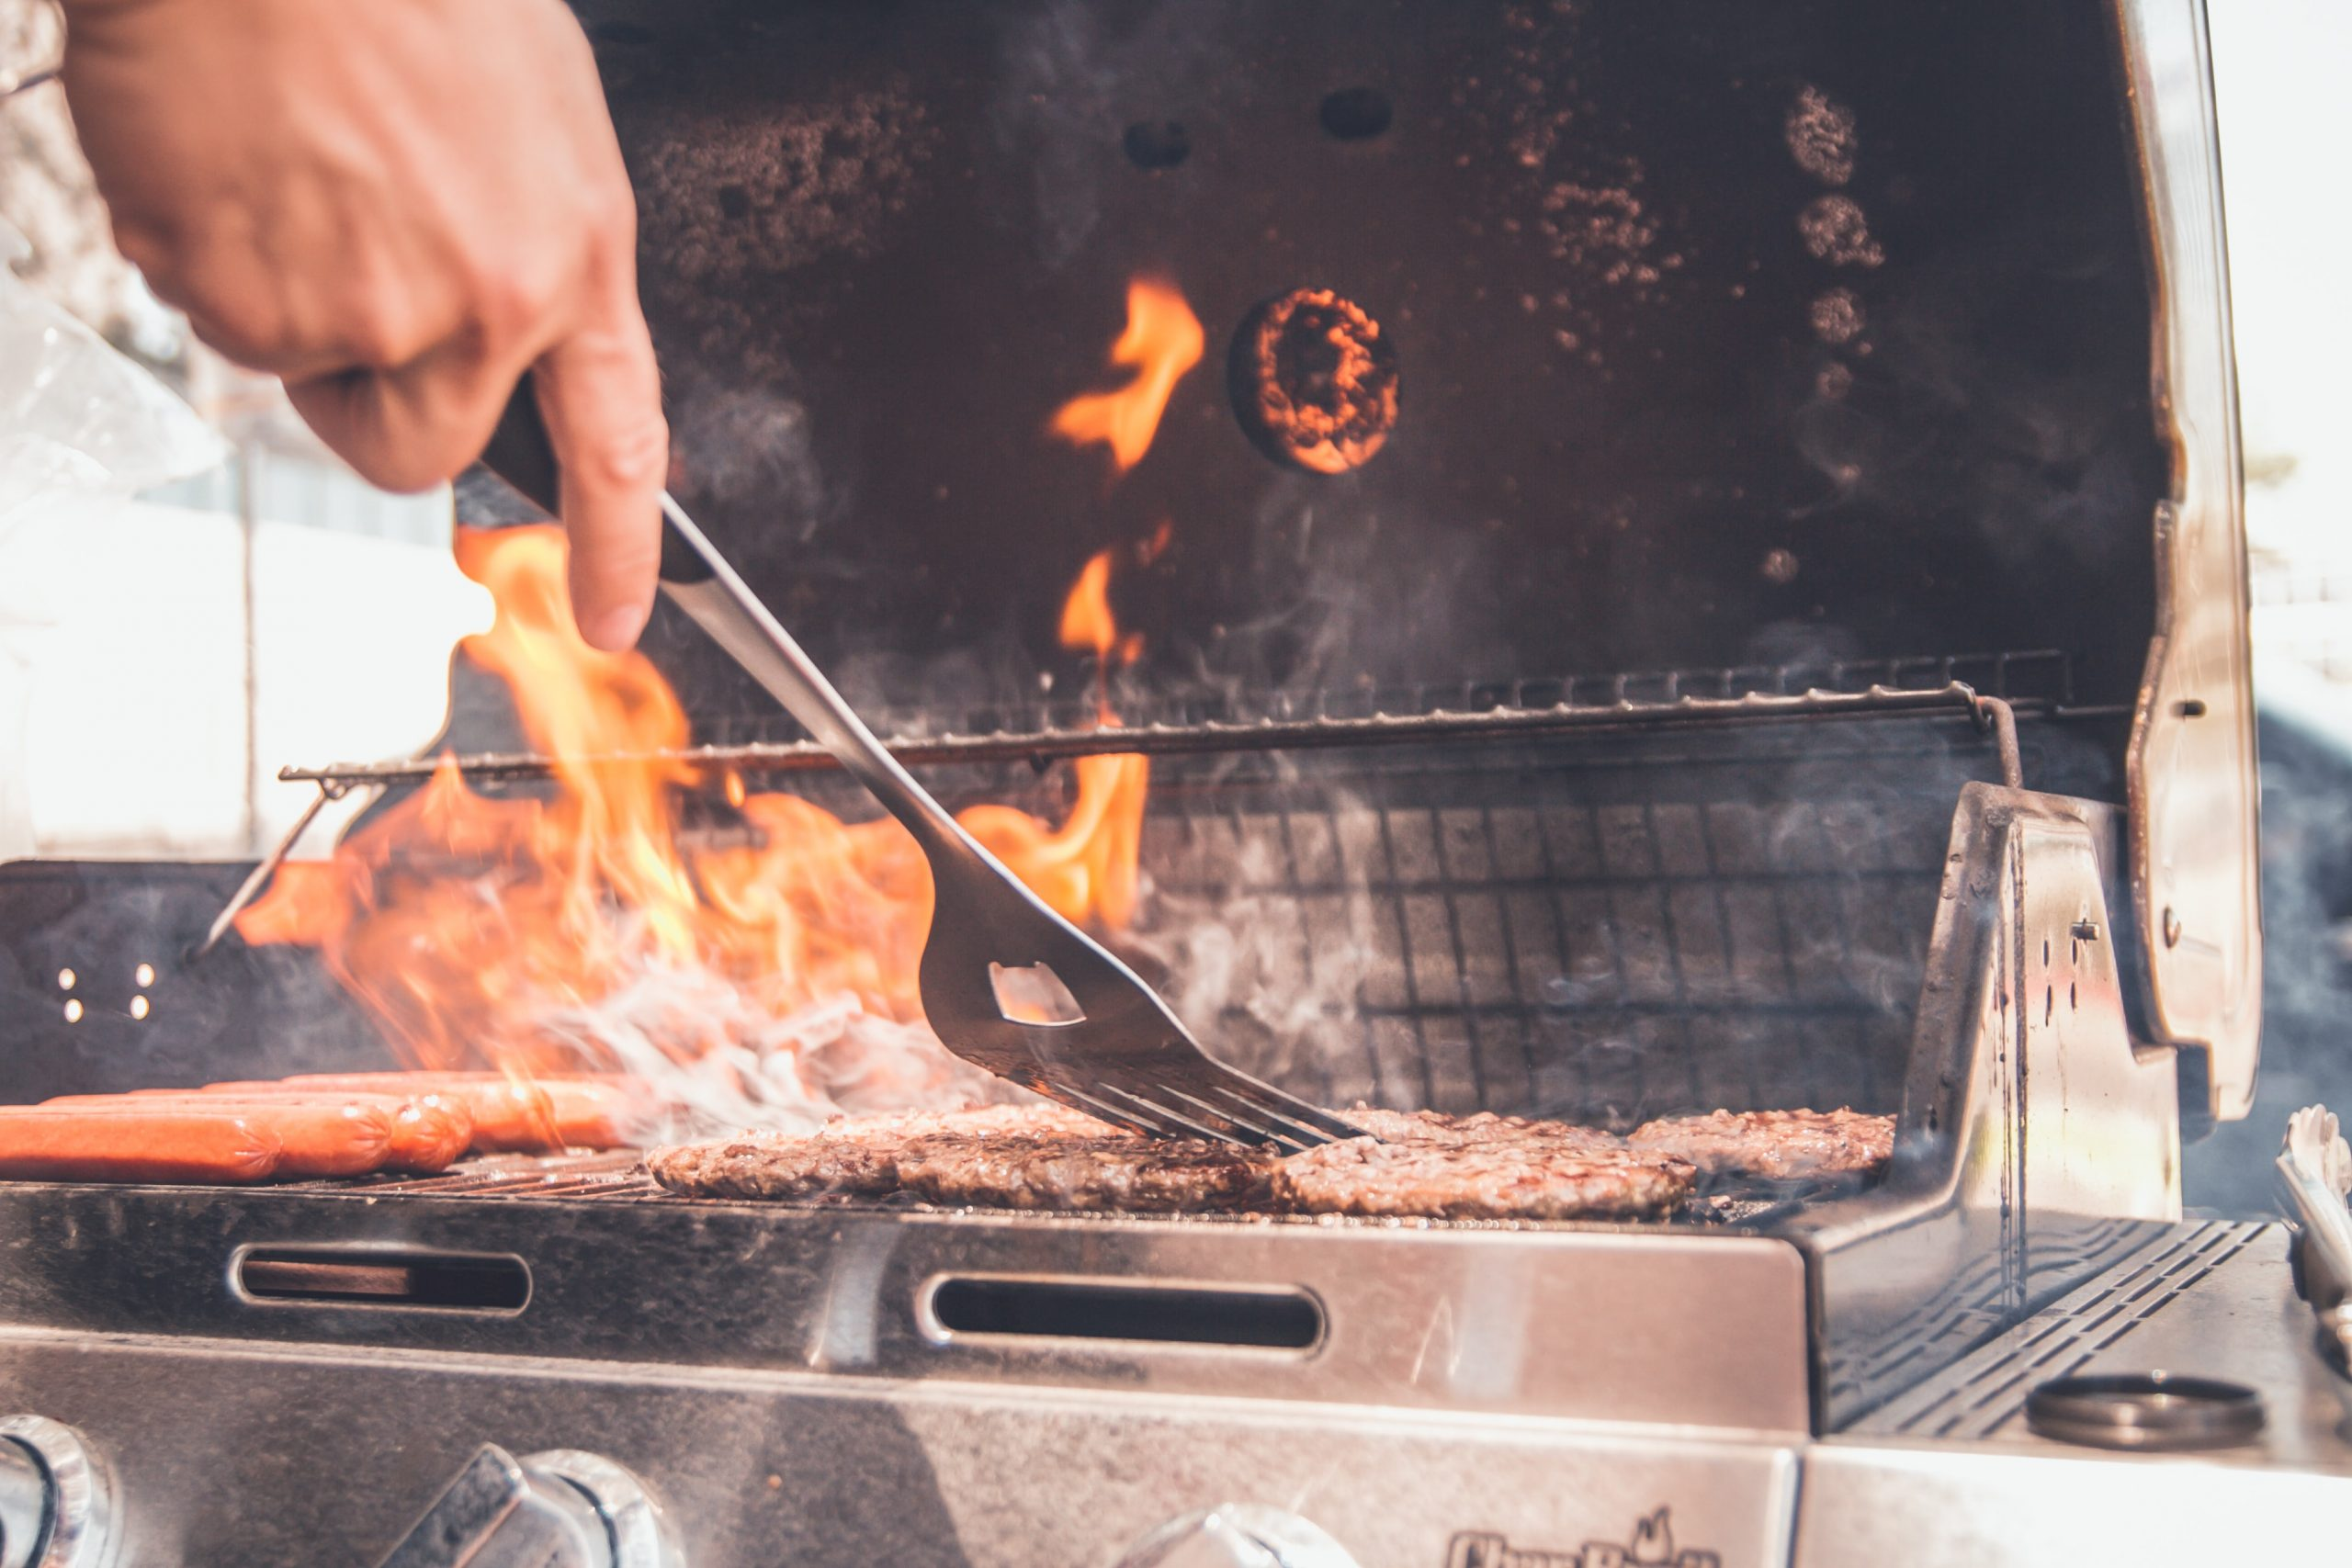 Summer Safety Series: Grilling